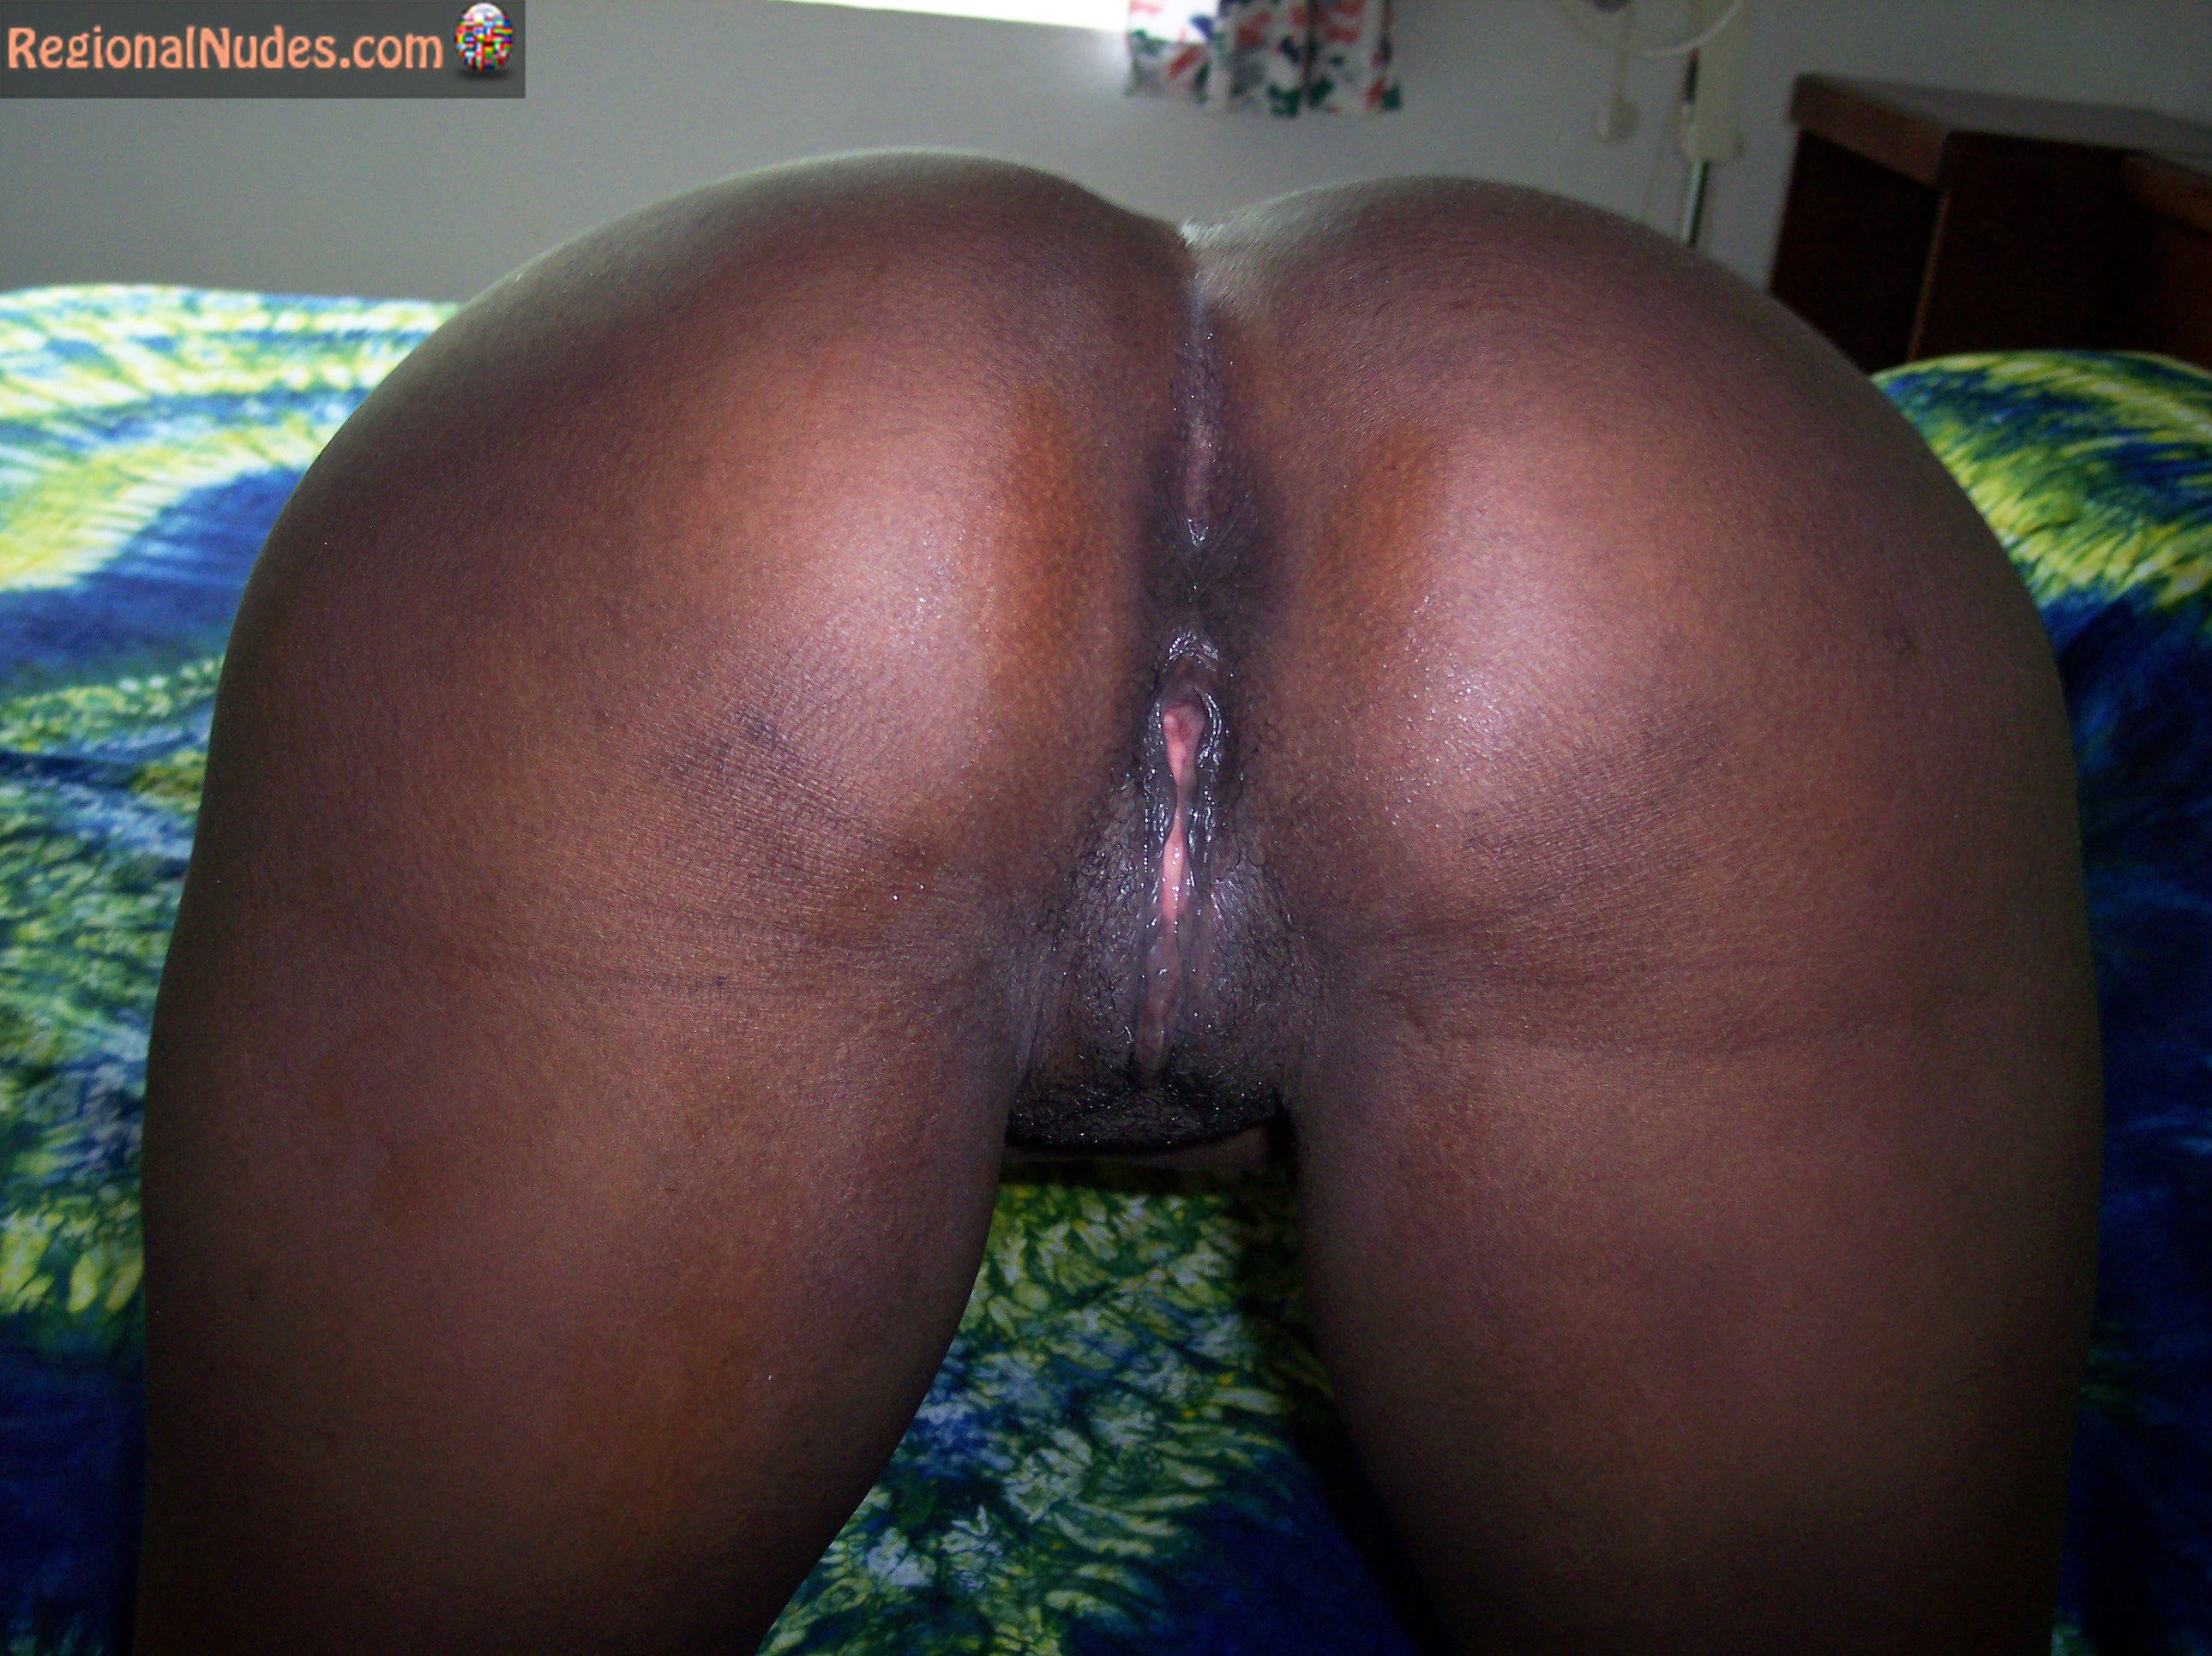 Naked African Coffee Ass From Ghana  Regional Nude Women -4099